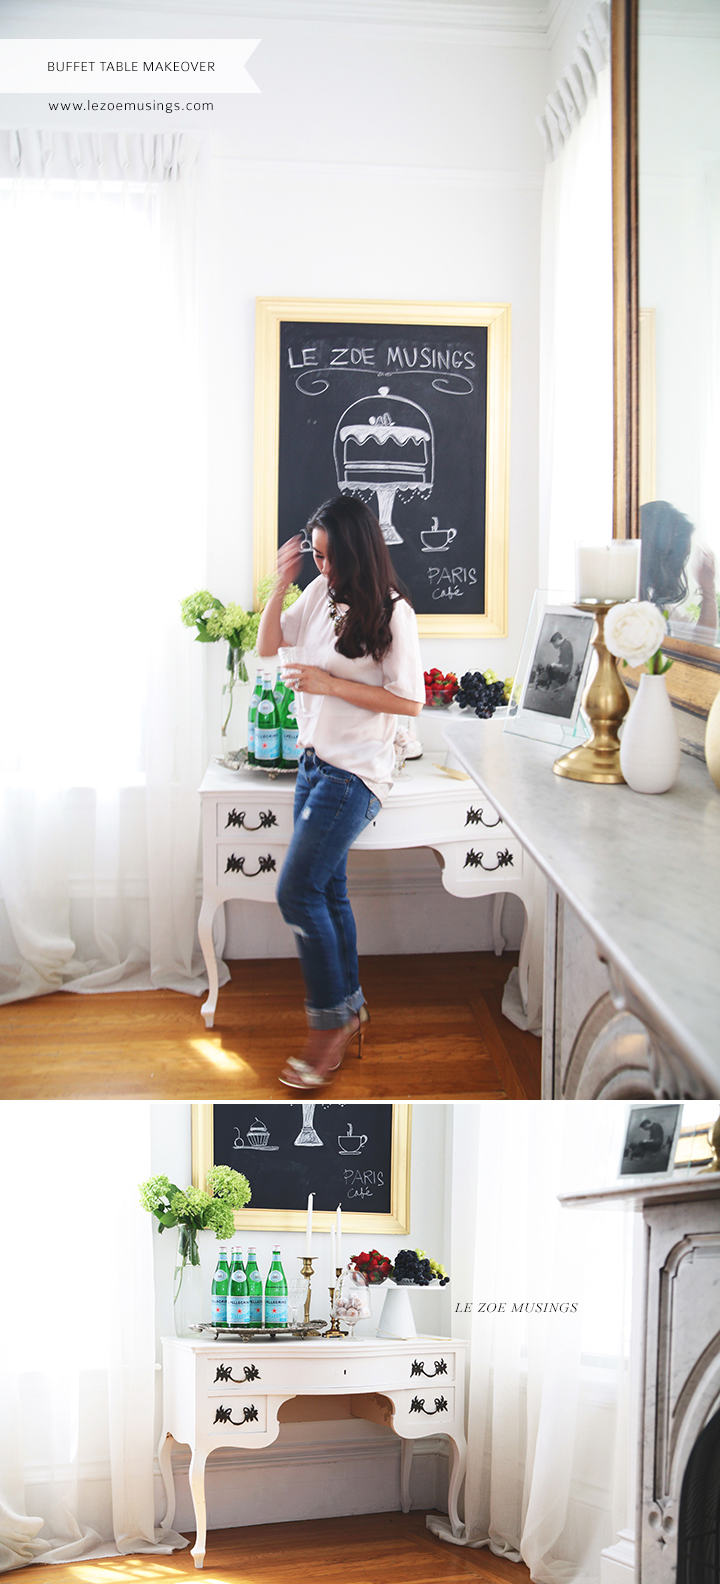 Buffet Table Makeover by Le Zoe Musings 6